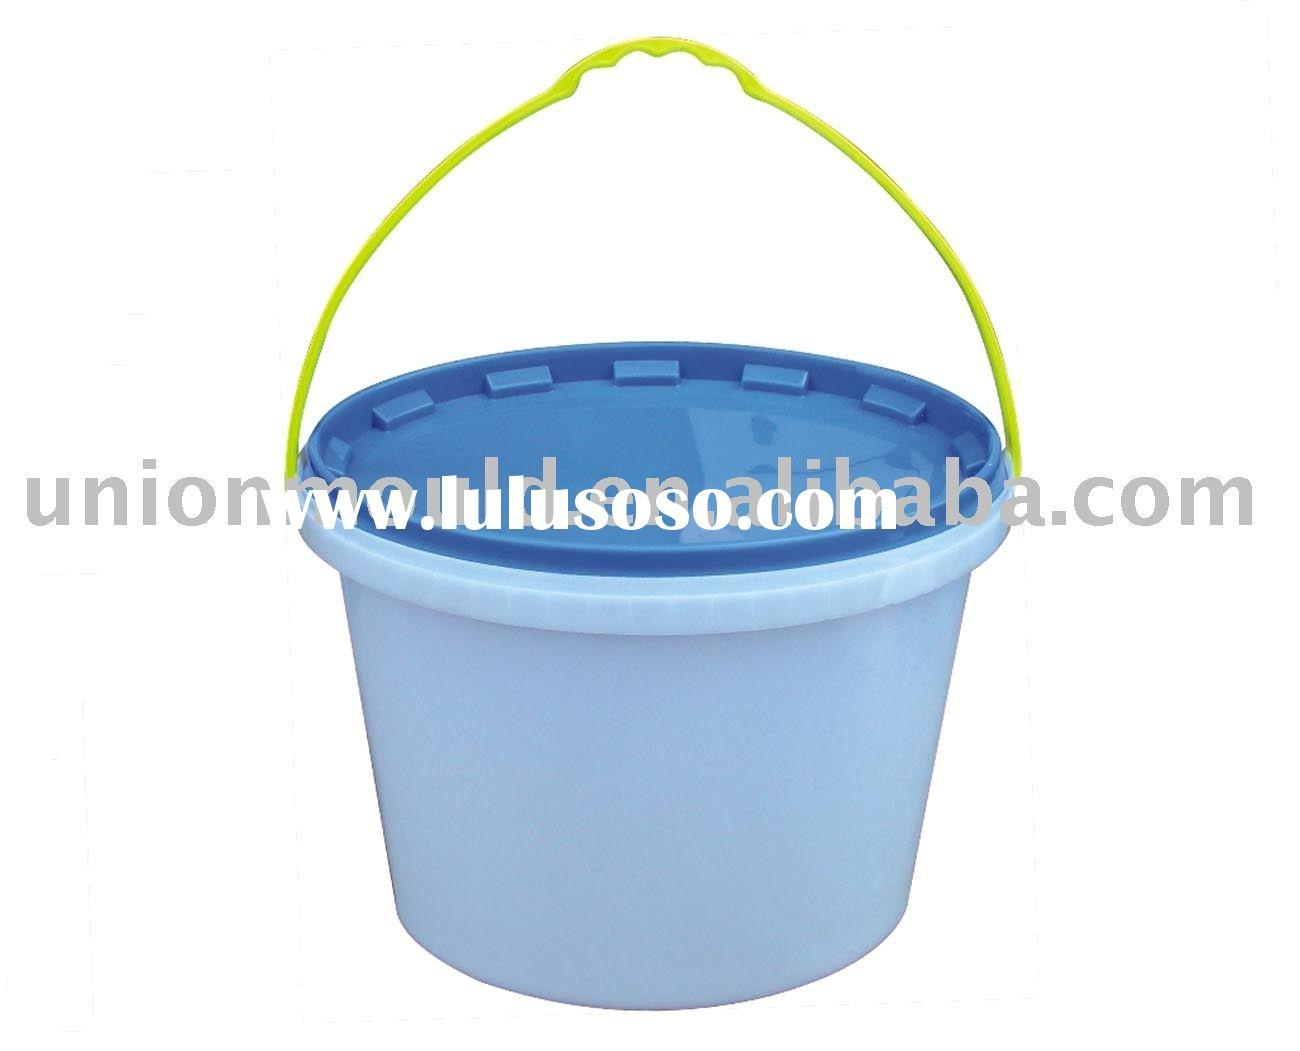 Plastic Paint Bucket Plastic painting bucket